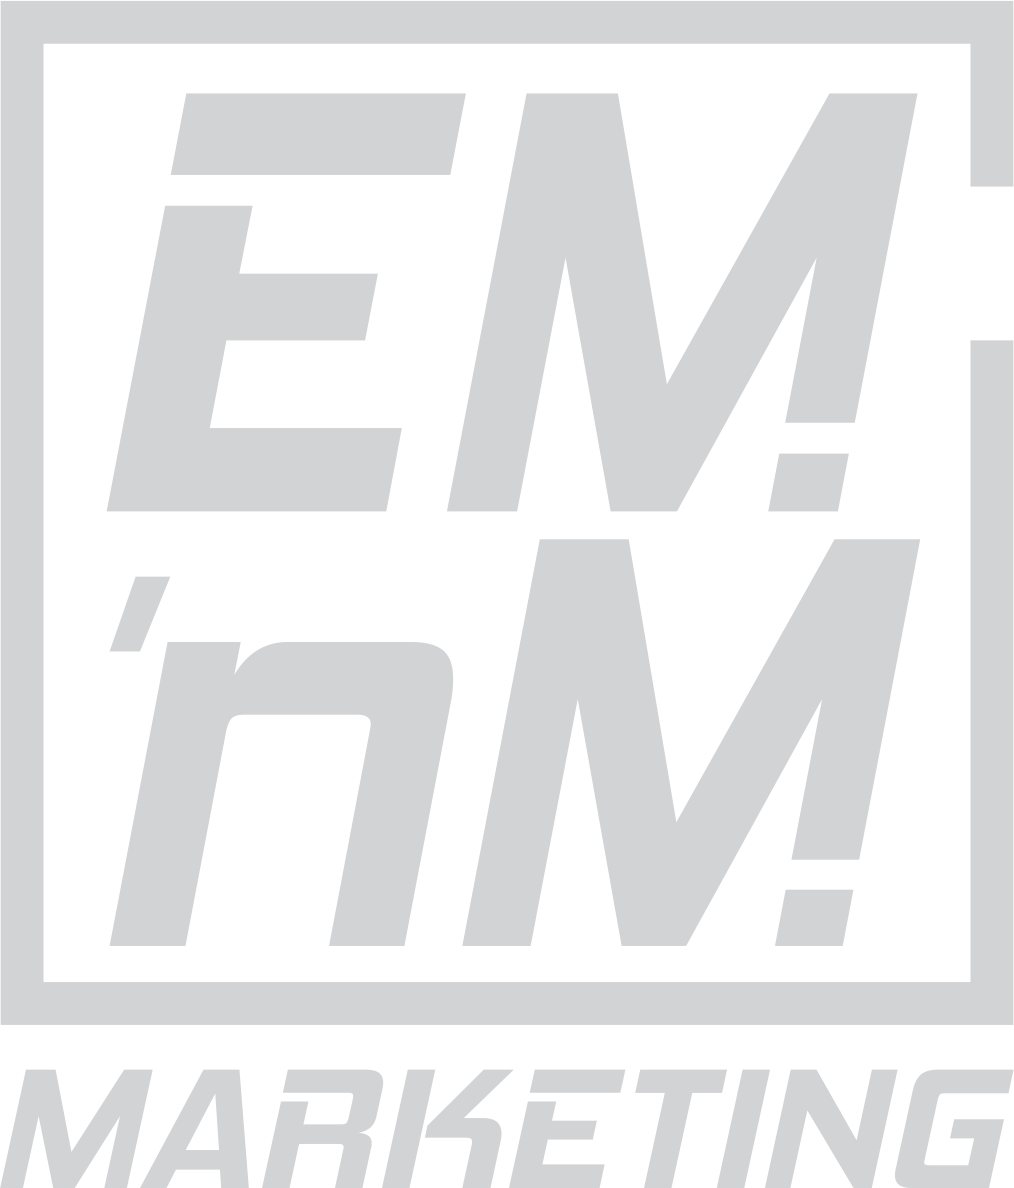 EM'nM MARKETING & EVENTS